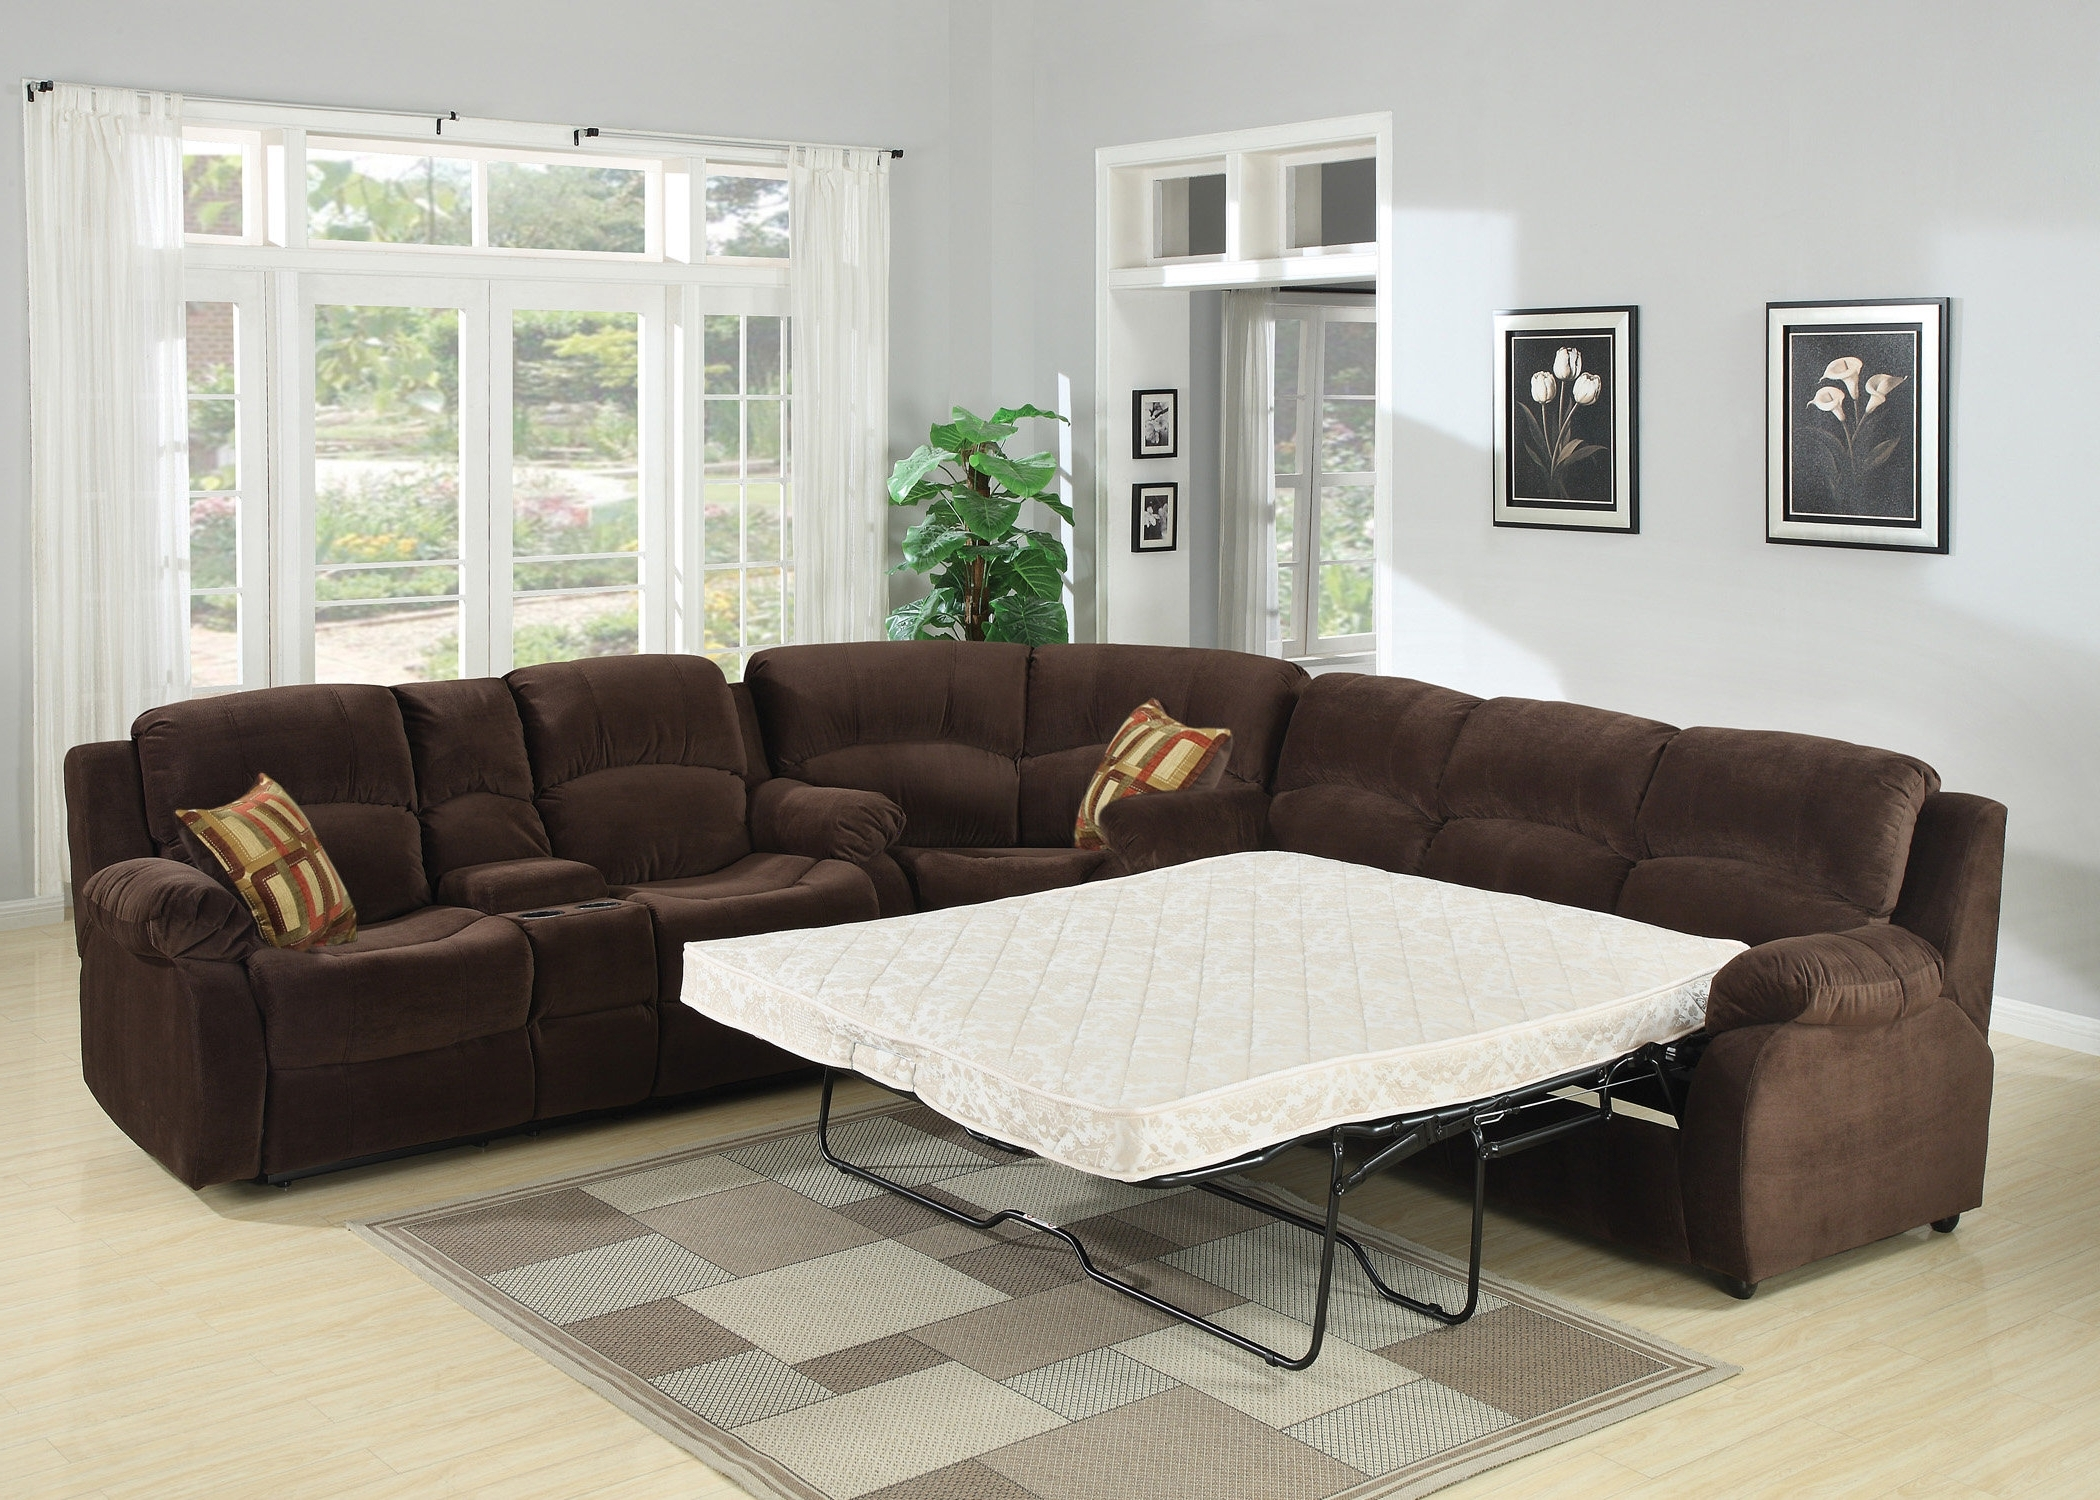 Famous Sleeper Sectional Sofas You'll Love (View 9 of 15)